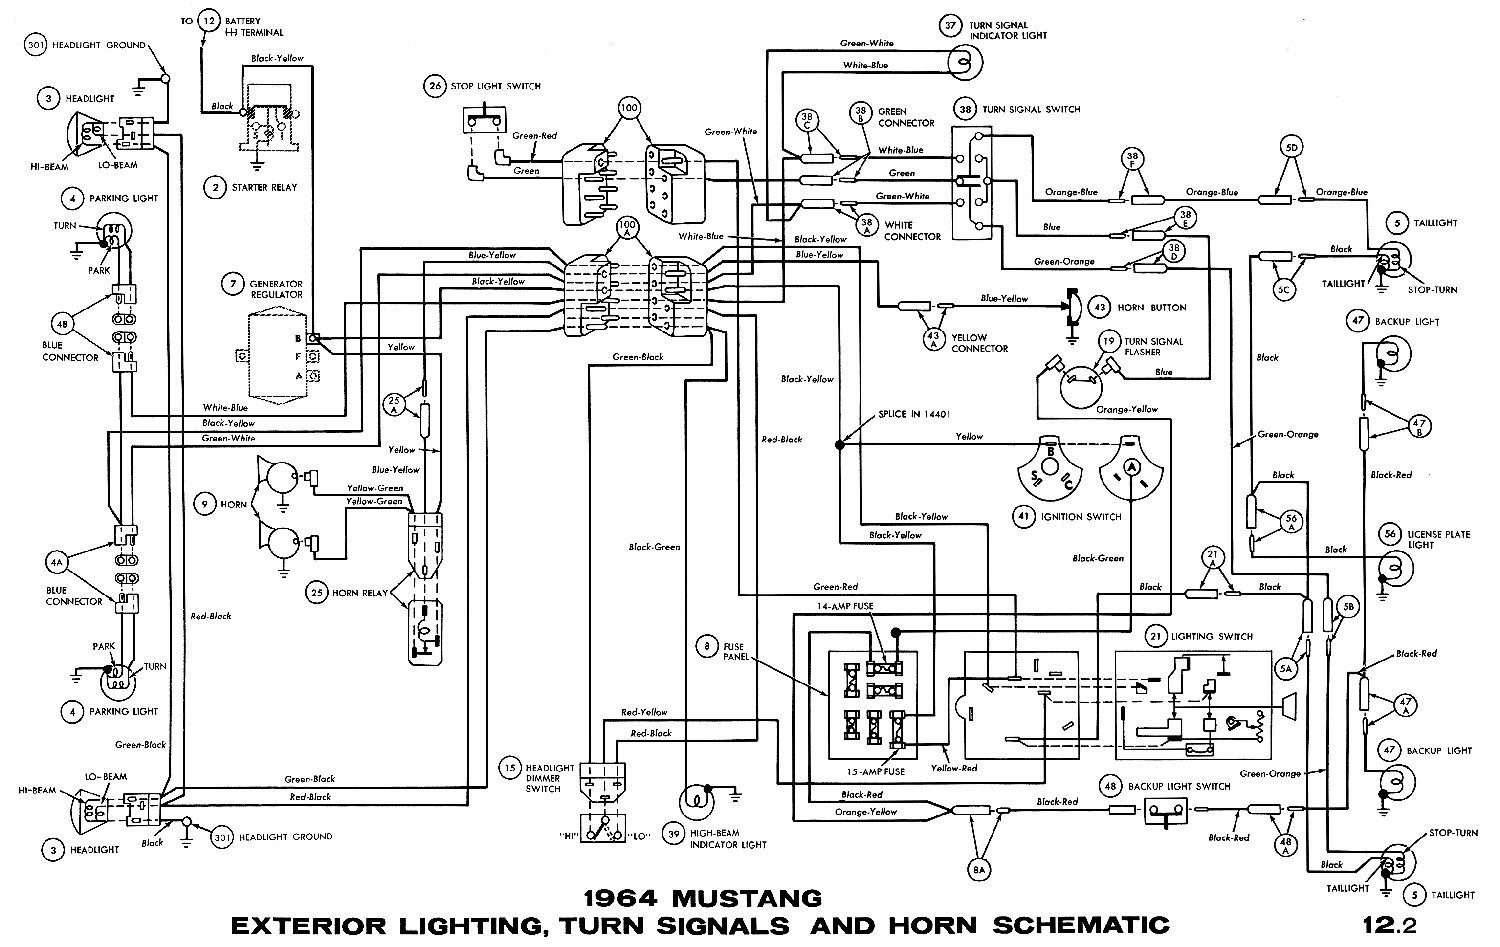 2007 Mustang Horn Wiring Diagram - House Wiring Diagram Symbols •